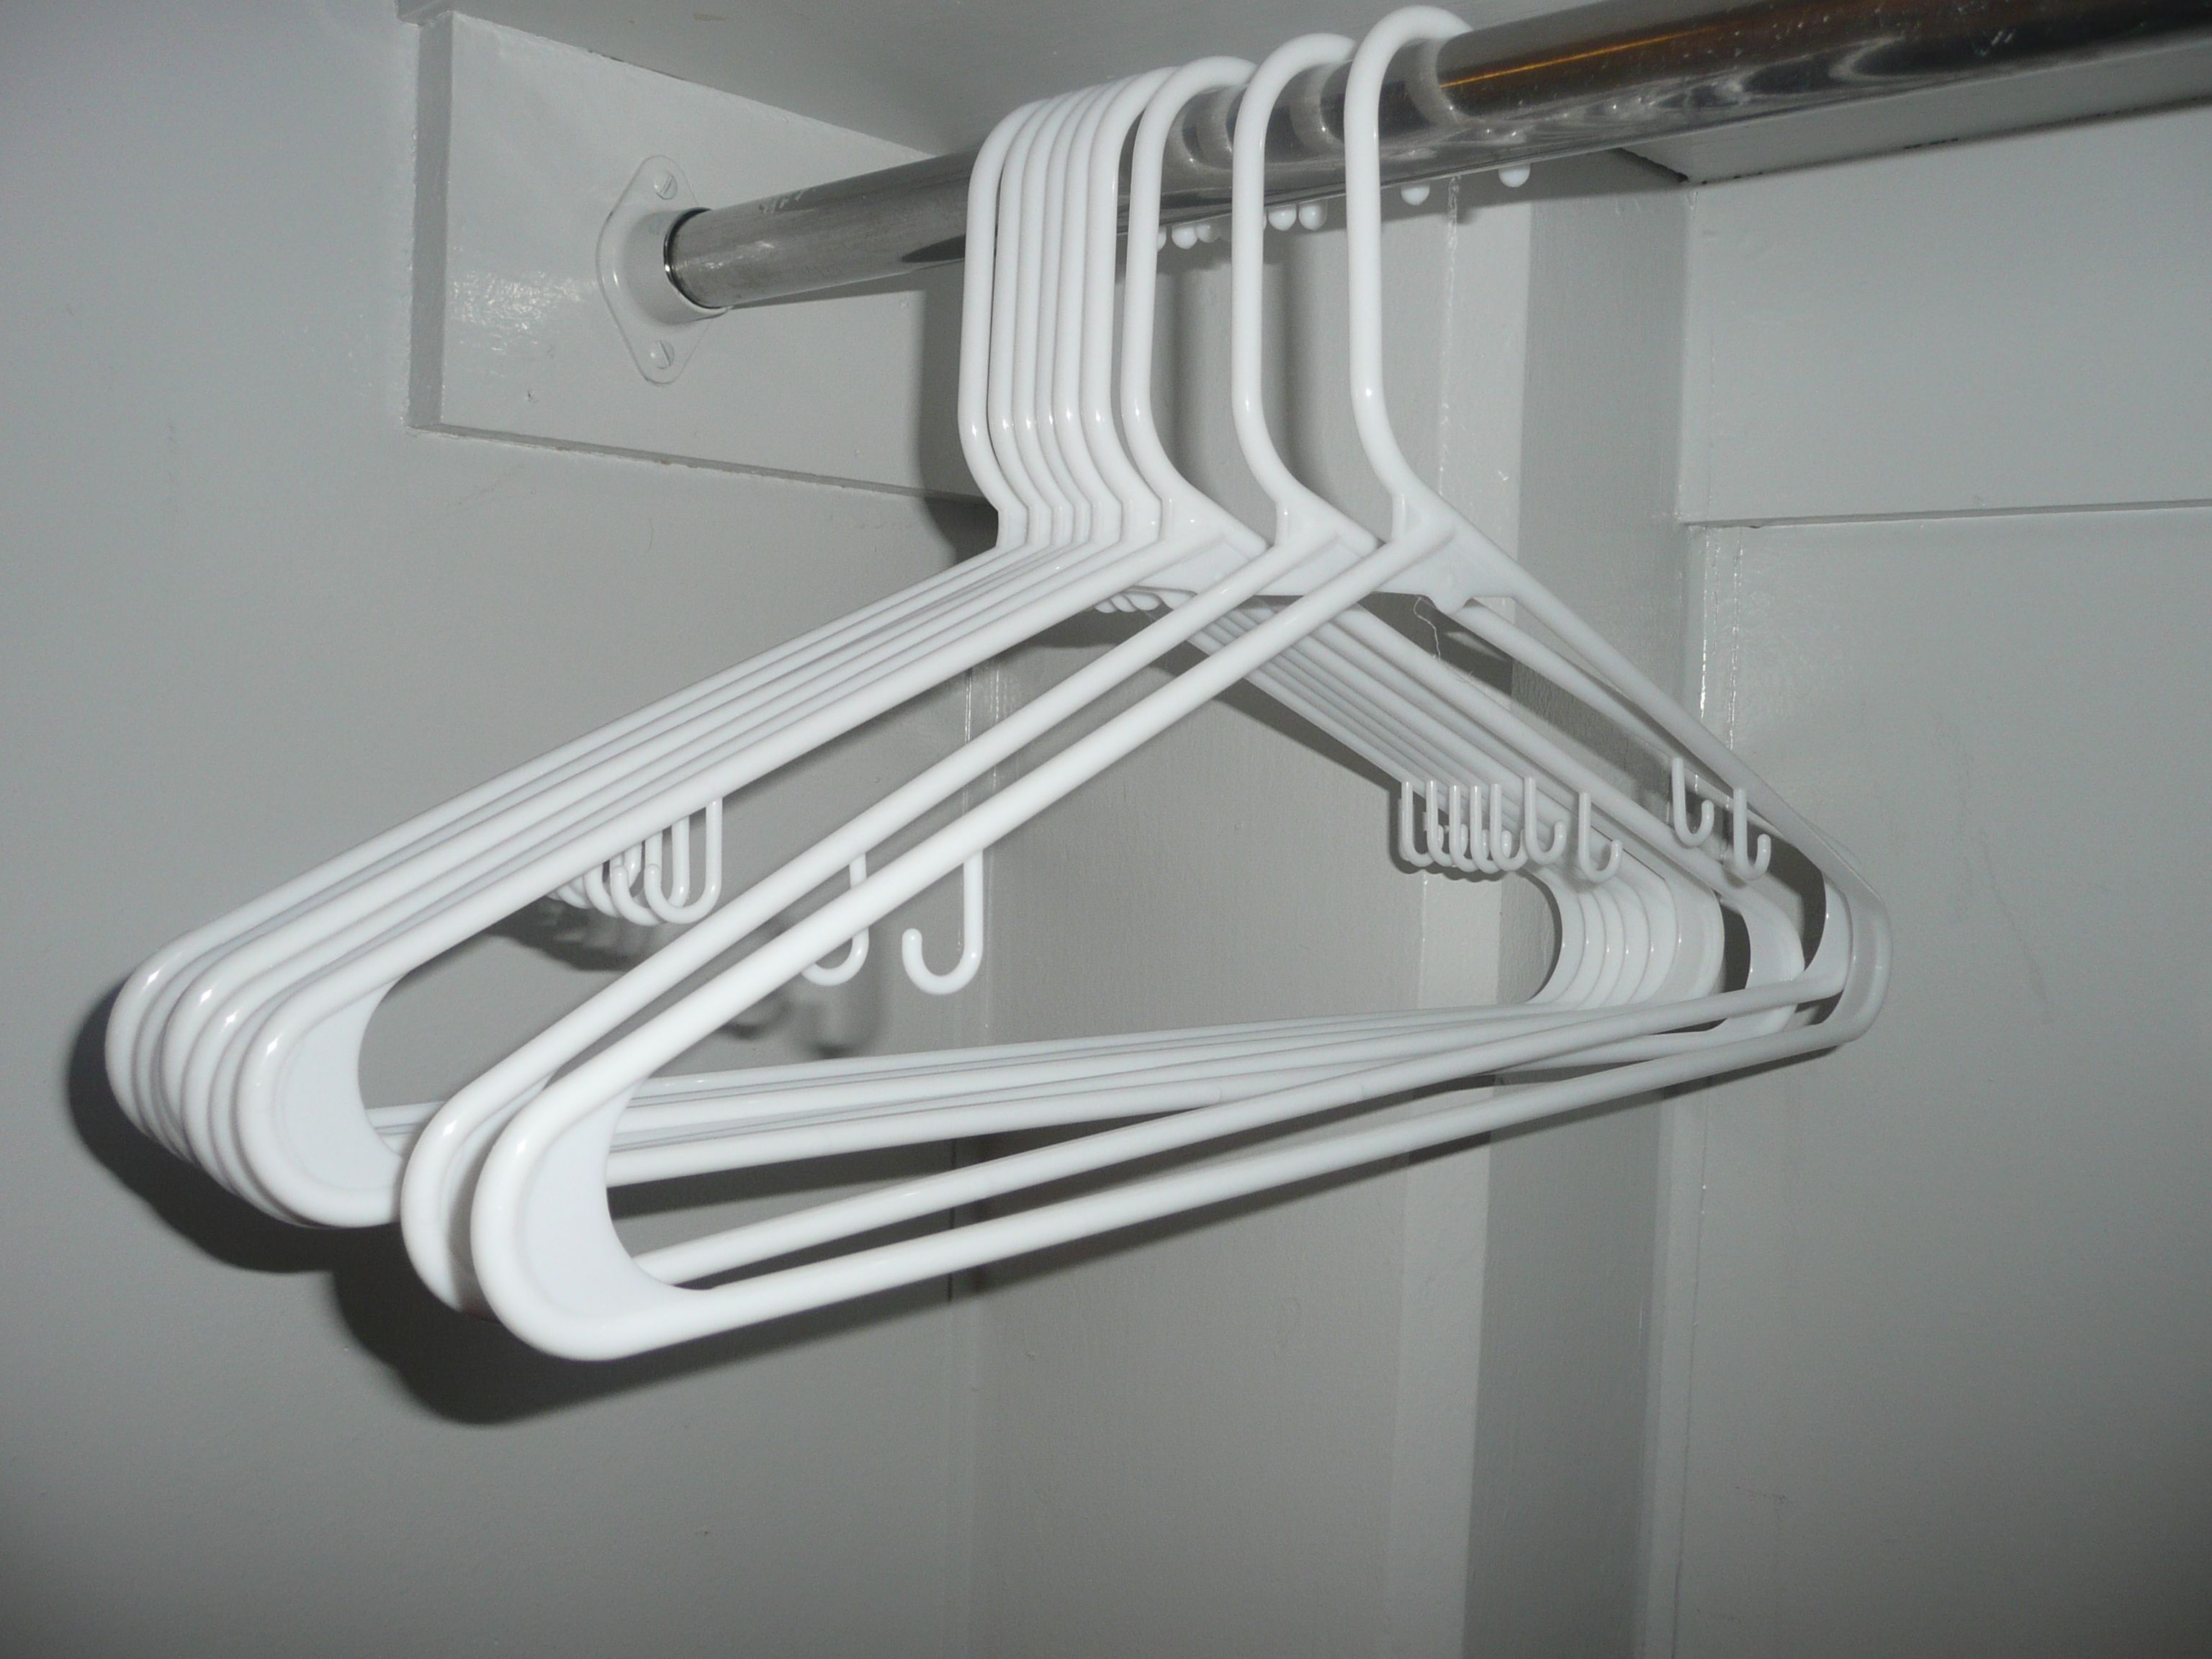 Hangers are mass-produced. One can rarely buy a single hanger, usually they come in sets of 10 or 18. Some packs of hangers can be $1 or $2, not expensive at all. Hangers can easily break therefore making the consumer buy more.